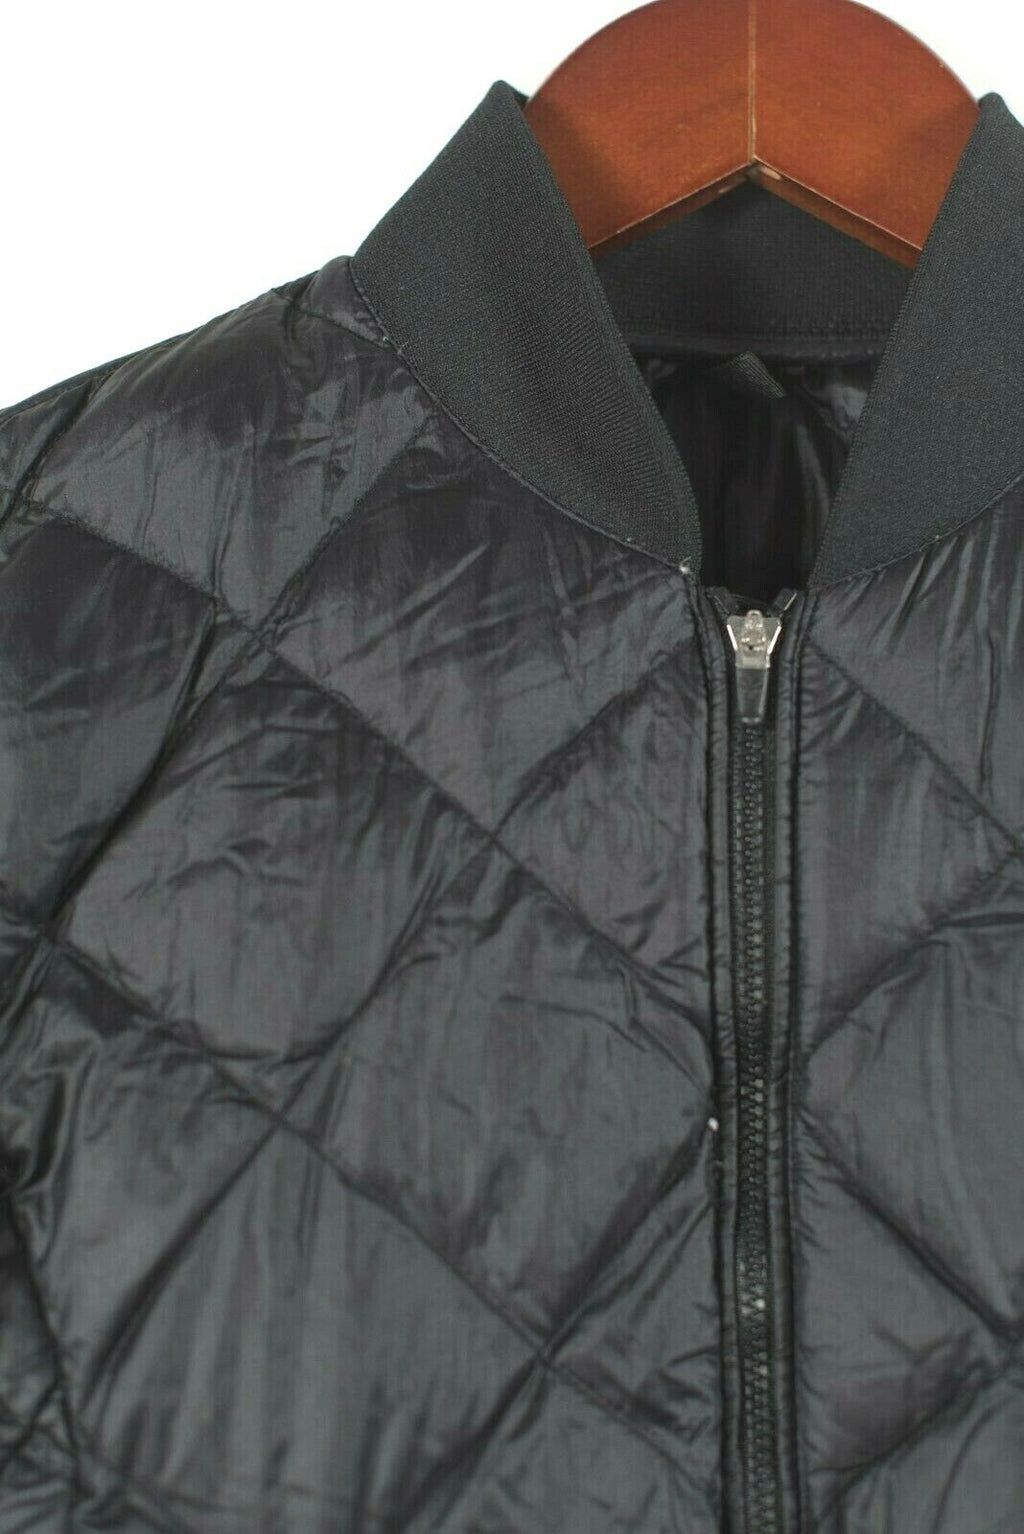 Aritzia TNA Womens Size XXS Black Jacket League Down Quilted Nylon Puffer Jacket